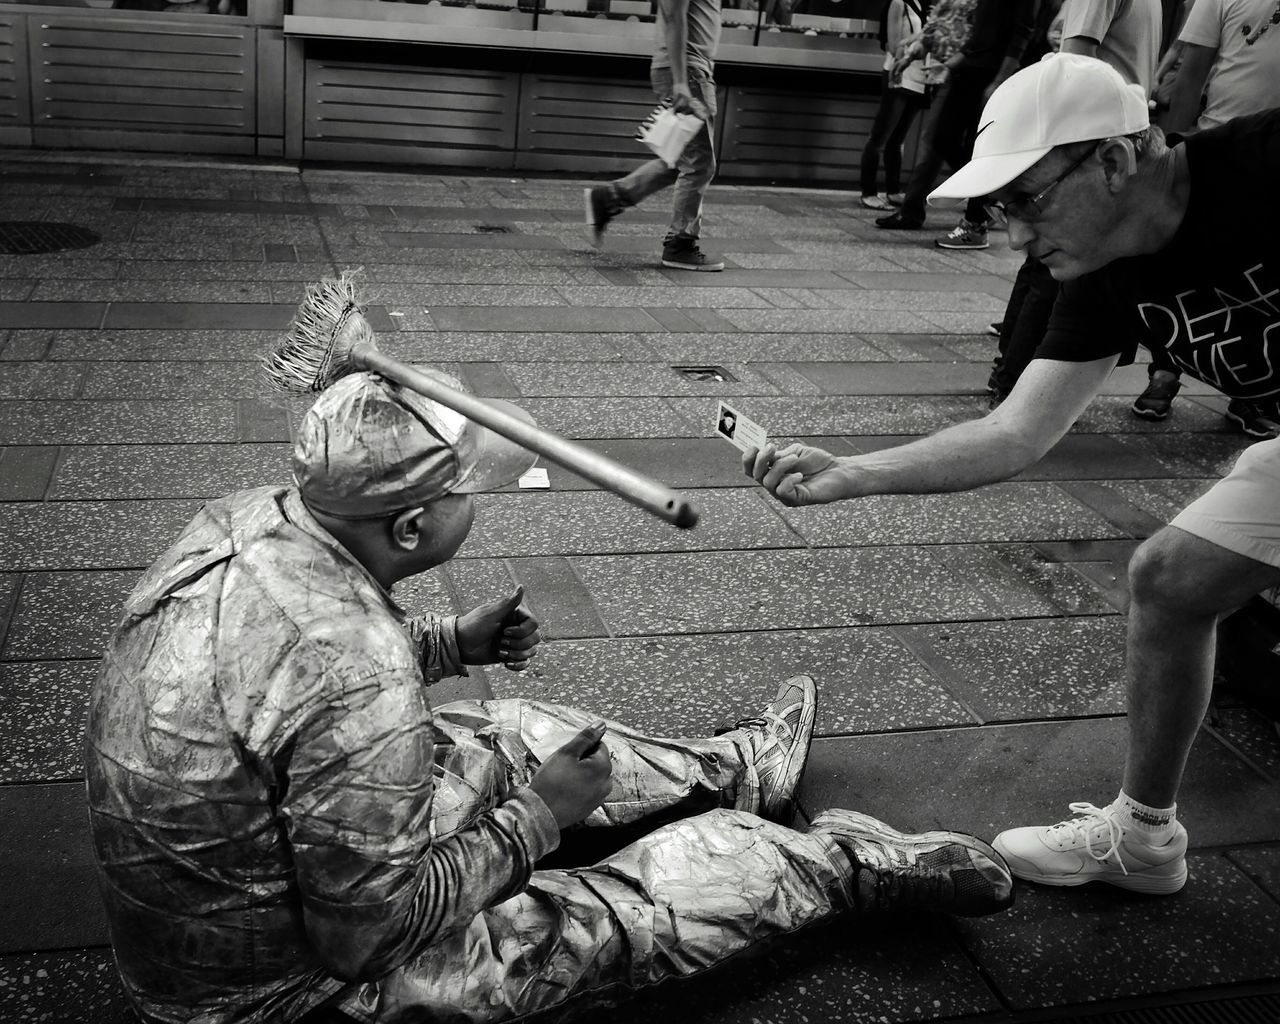 NYCImpressions EyeEm In NYC 2015Times Square NYC Bussiness Card Street Performer